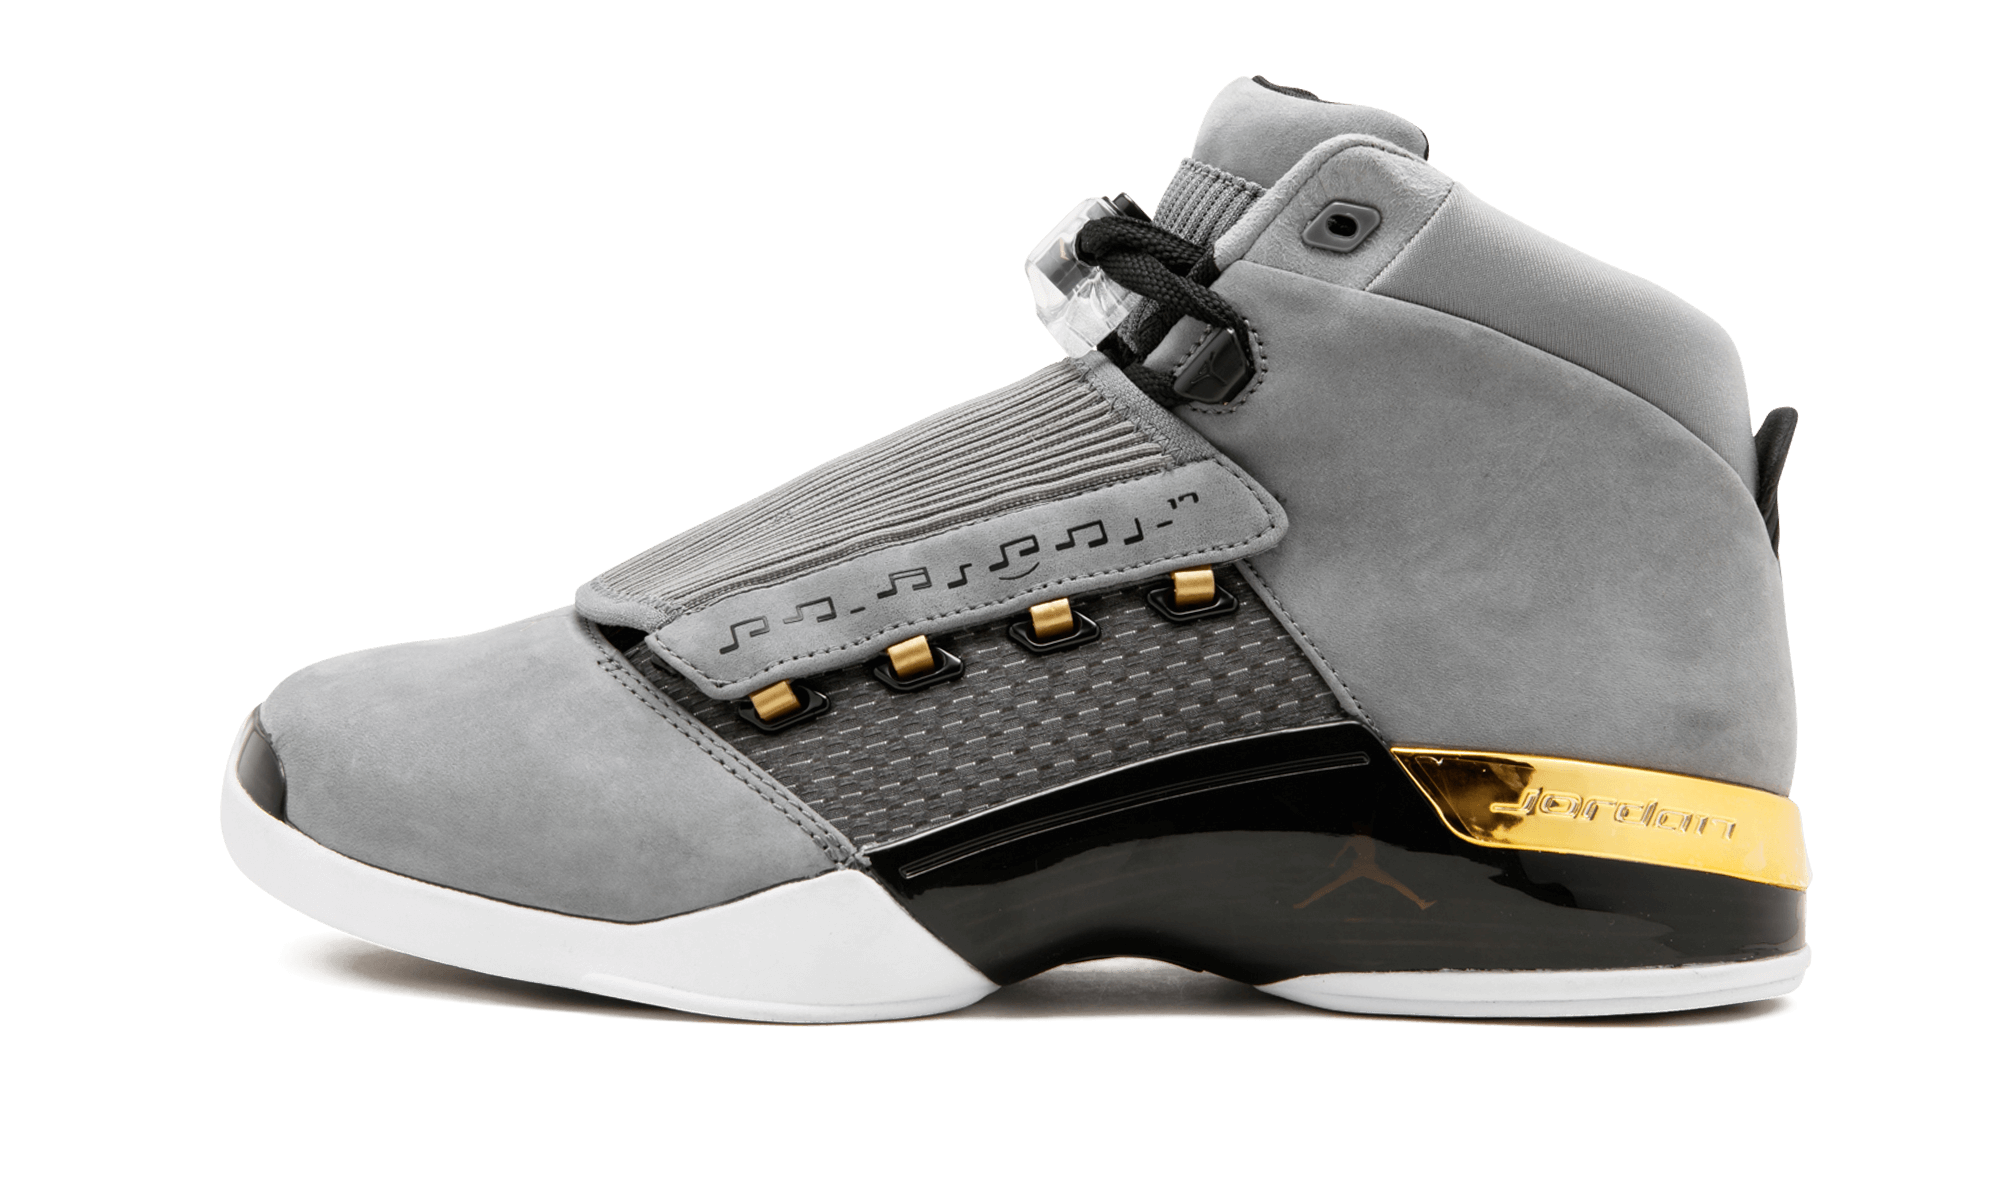 promo code 659d3 e31cd The first-ever solo retro of the Air Jordan 17 was not-so-surprisingly  masterminded by Michael Jordan's son Marcus, the owner of Orlando boutique  Trophy ...